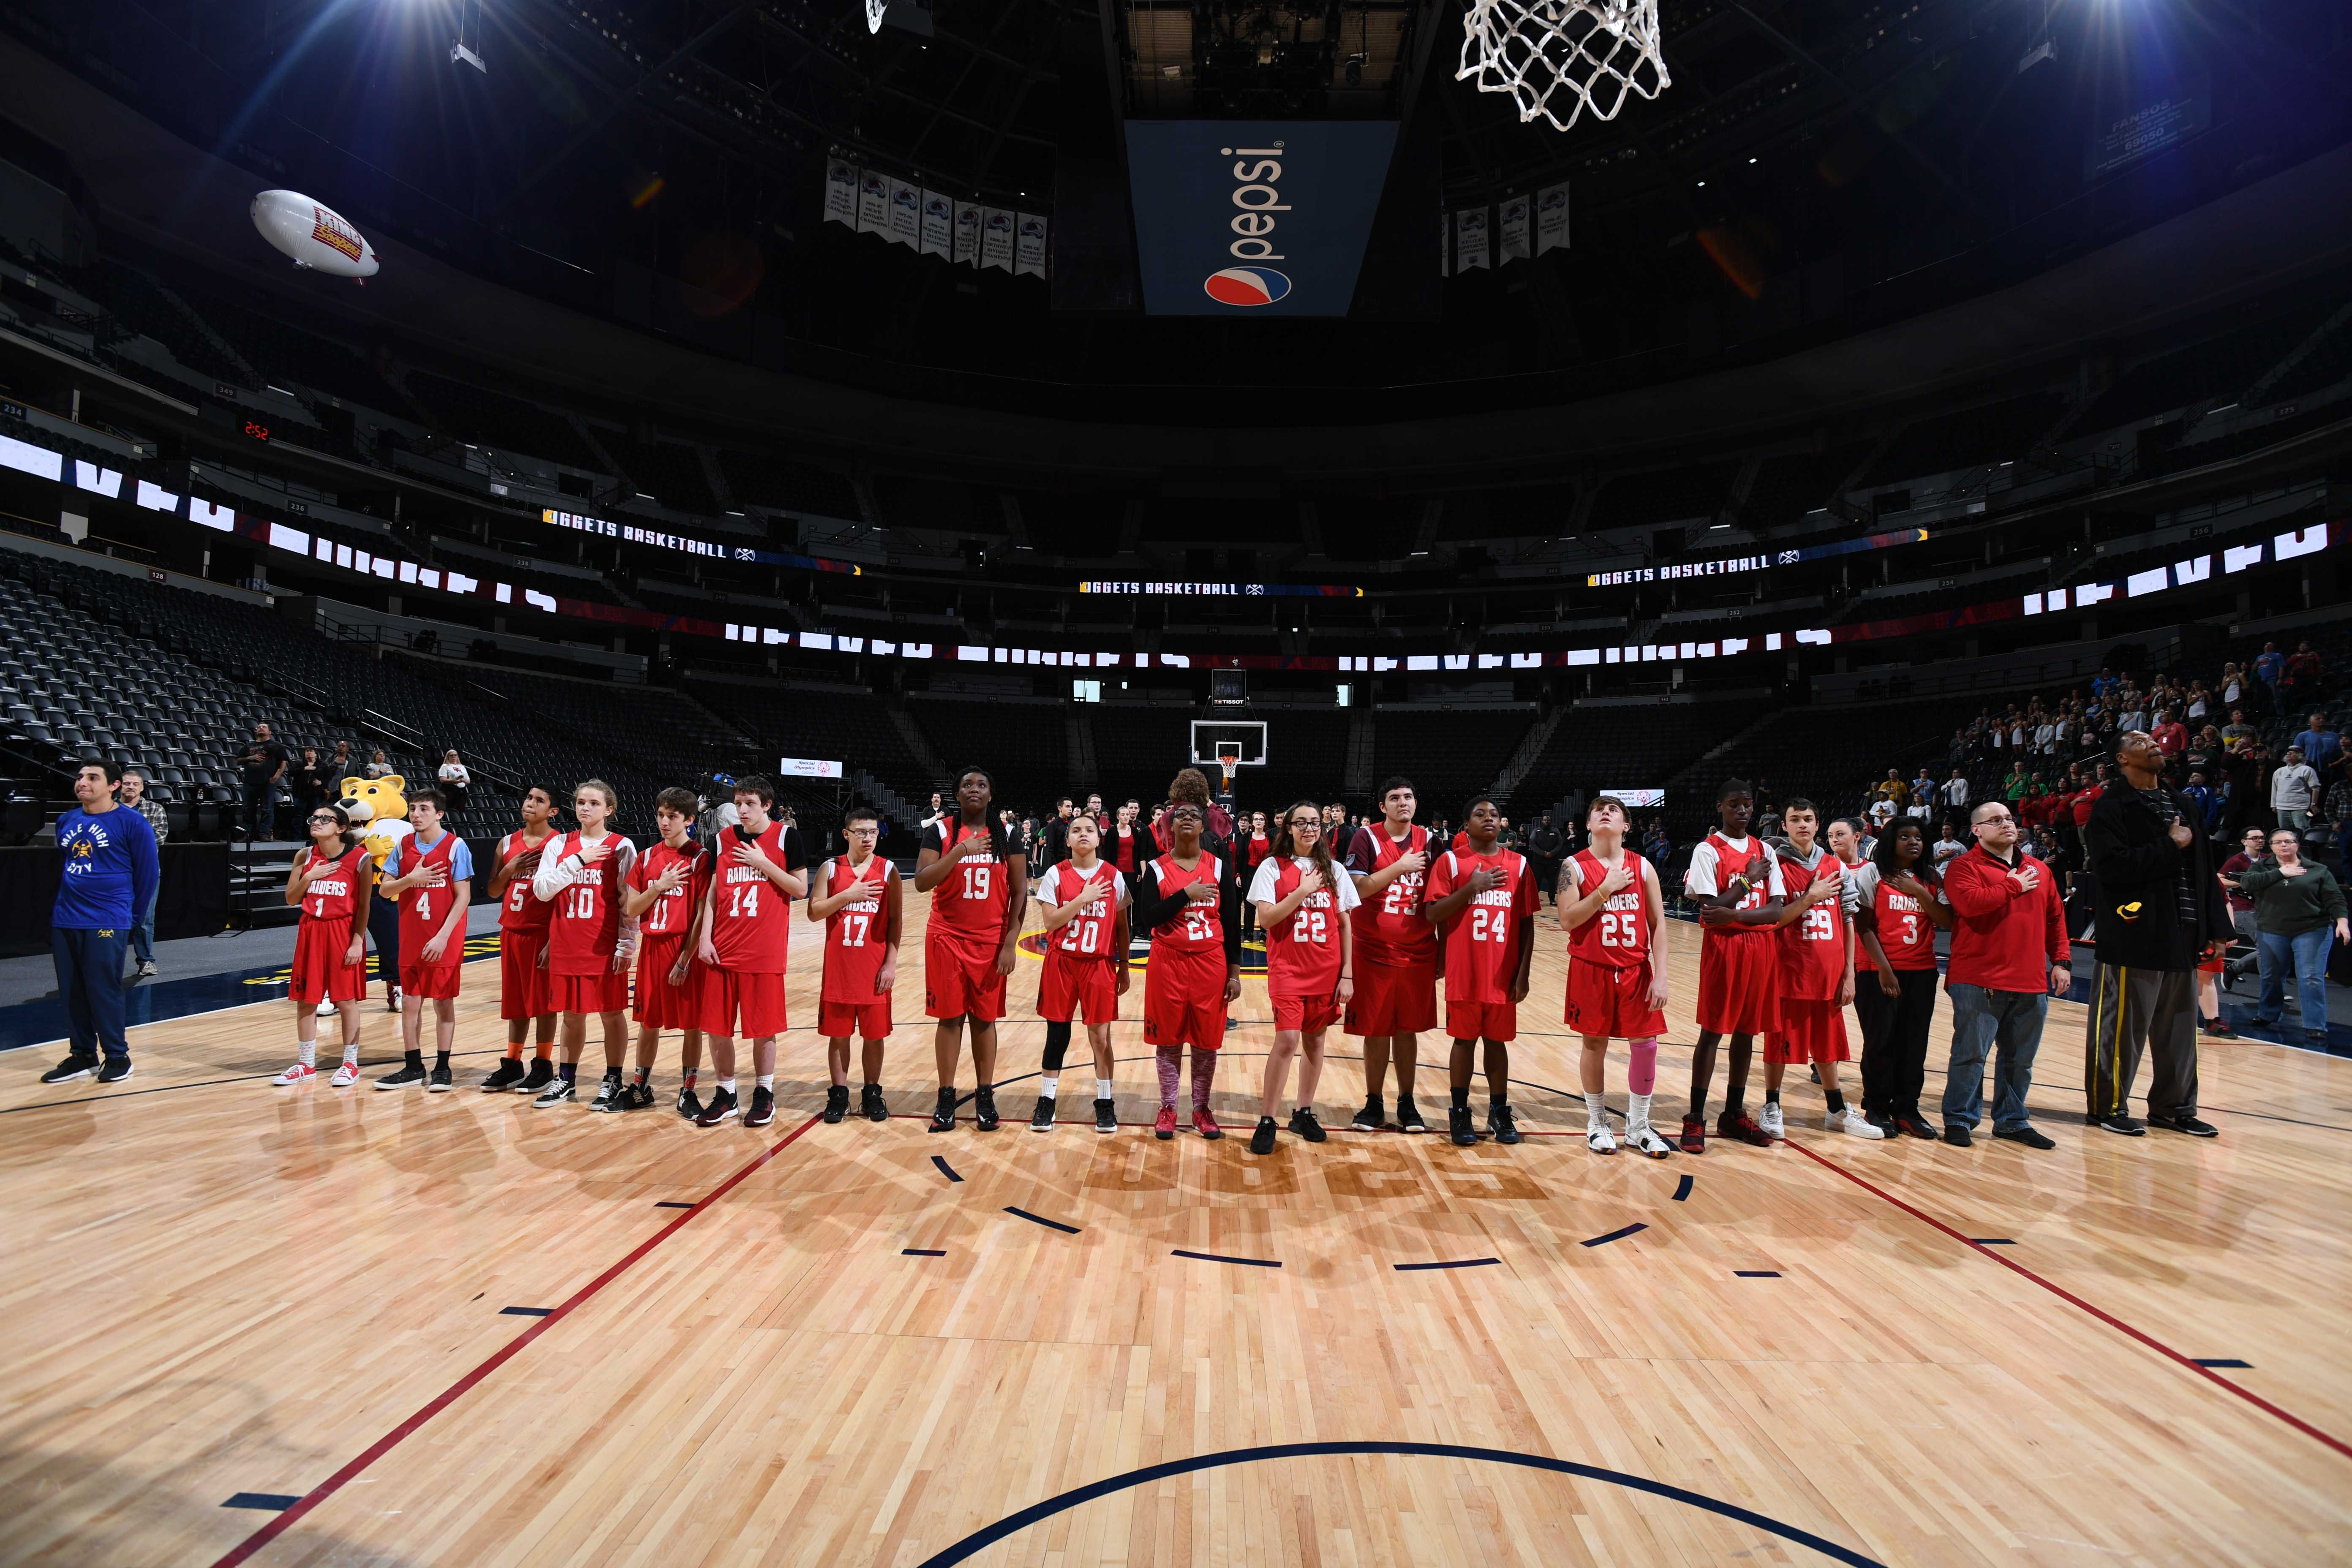 DENVER, CO - JANUARY 18: The Denver Nuggets host the Special Olympics of Colorado for a clinic on January 18, 2019 at the Pepsi Center in Denver, Colorado. NOTE TO USER: User expressly acknowledges and agrees that, by downloading and/or using this Photograph, user is consenting to the terms and conditions of the Getty Images License Agreement. Mandatory Copyright Notice: Copyright 2019 NBAE (Photo by Garrett W. Ellwood/NBAE via Getty Images)